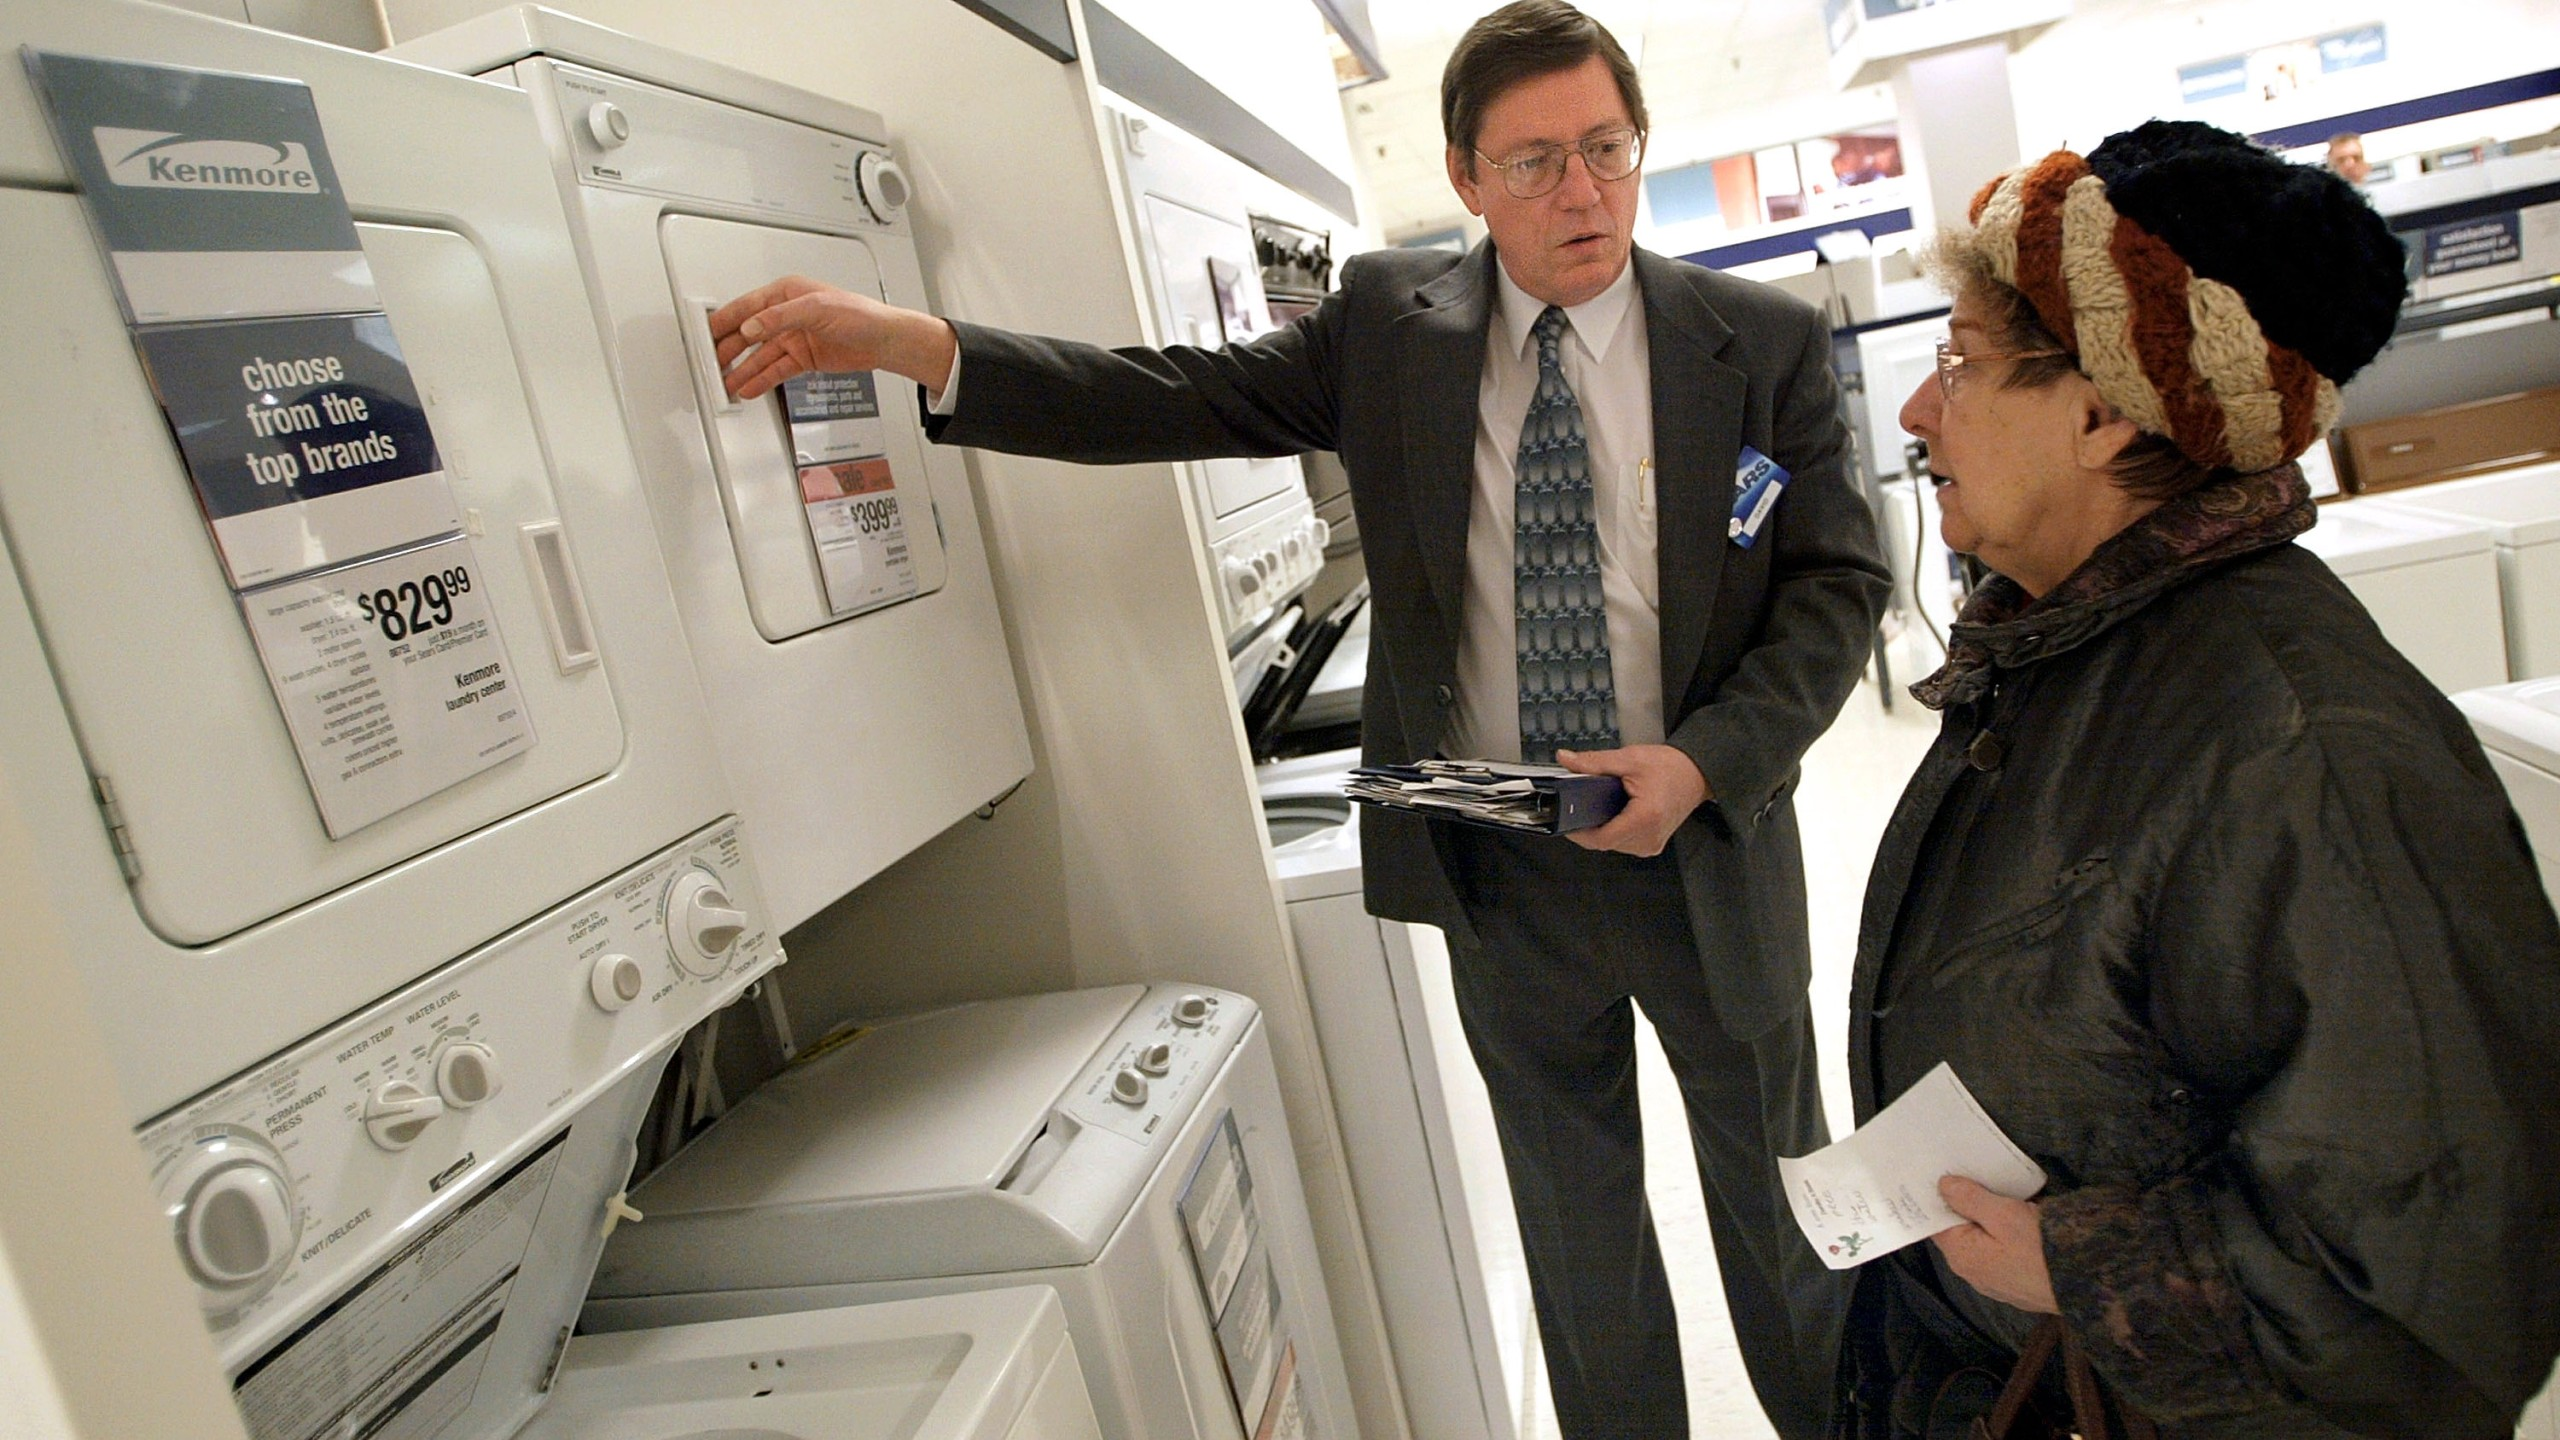 A sales associate assists a customer as she shops for a washer/dryer at an Illinois Sears store on Jan. 22, 2003. (Credit: Tim Boyle/Getty Images)